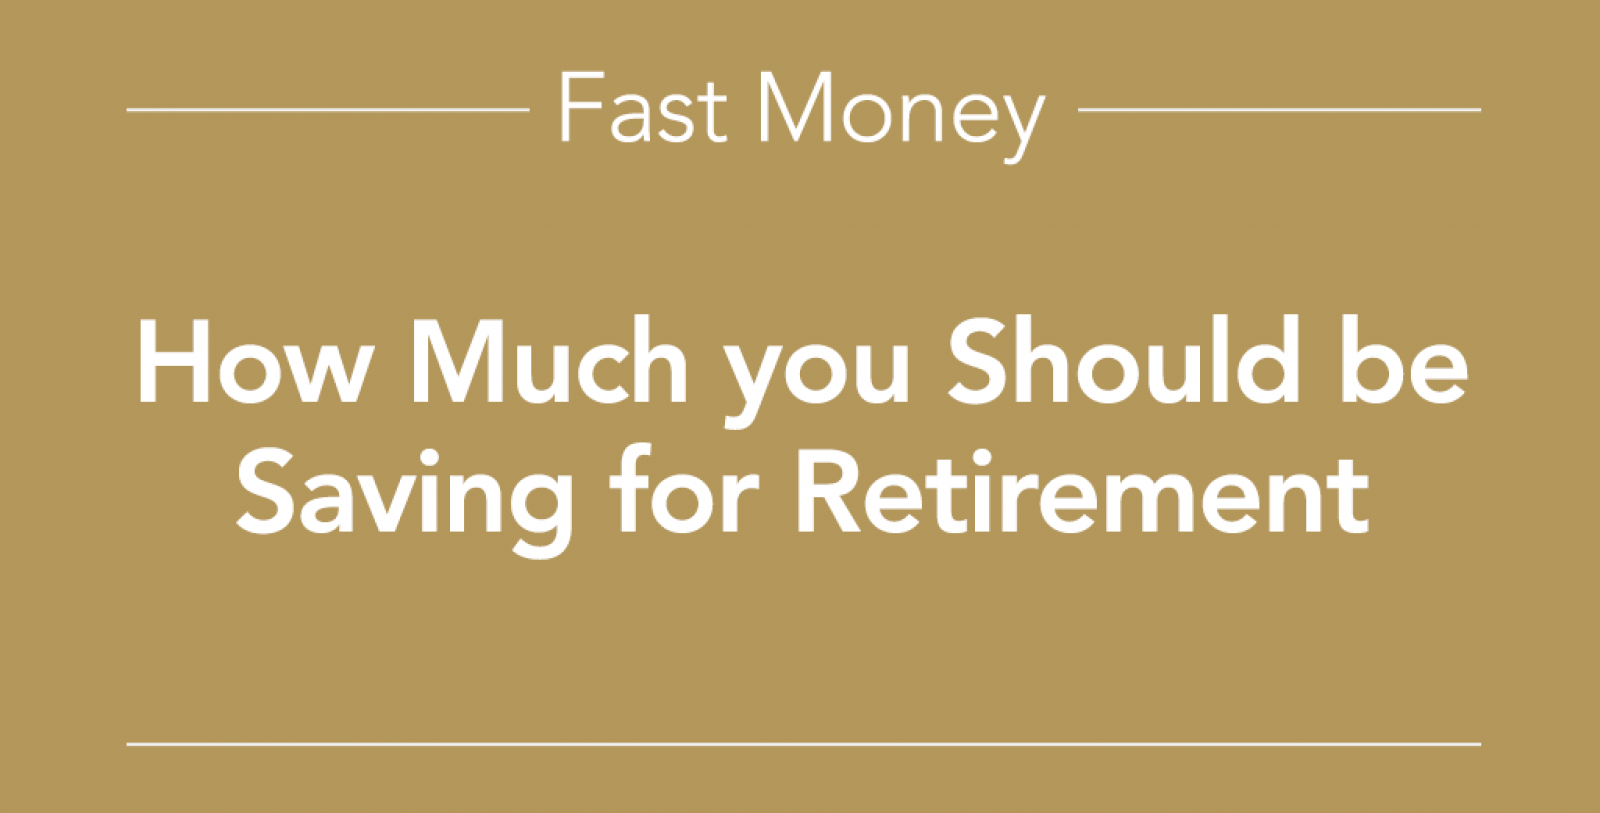 How much you should be saving for retirement